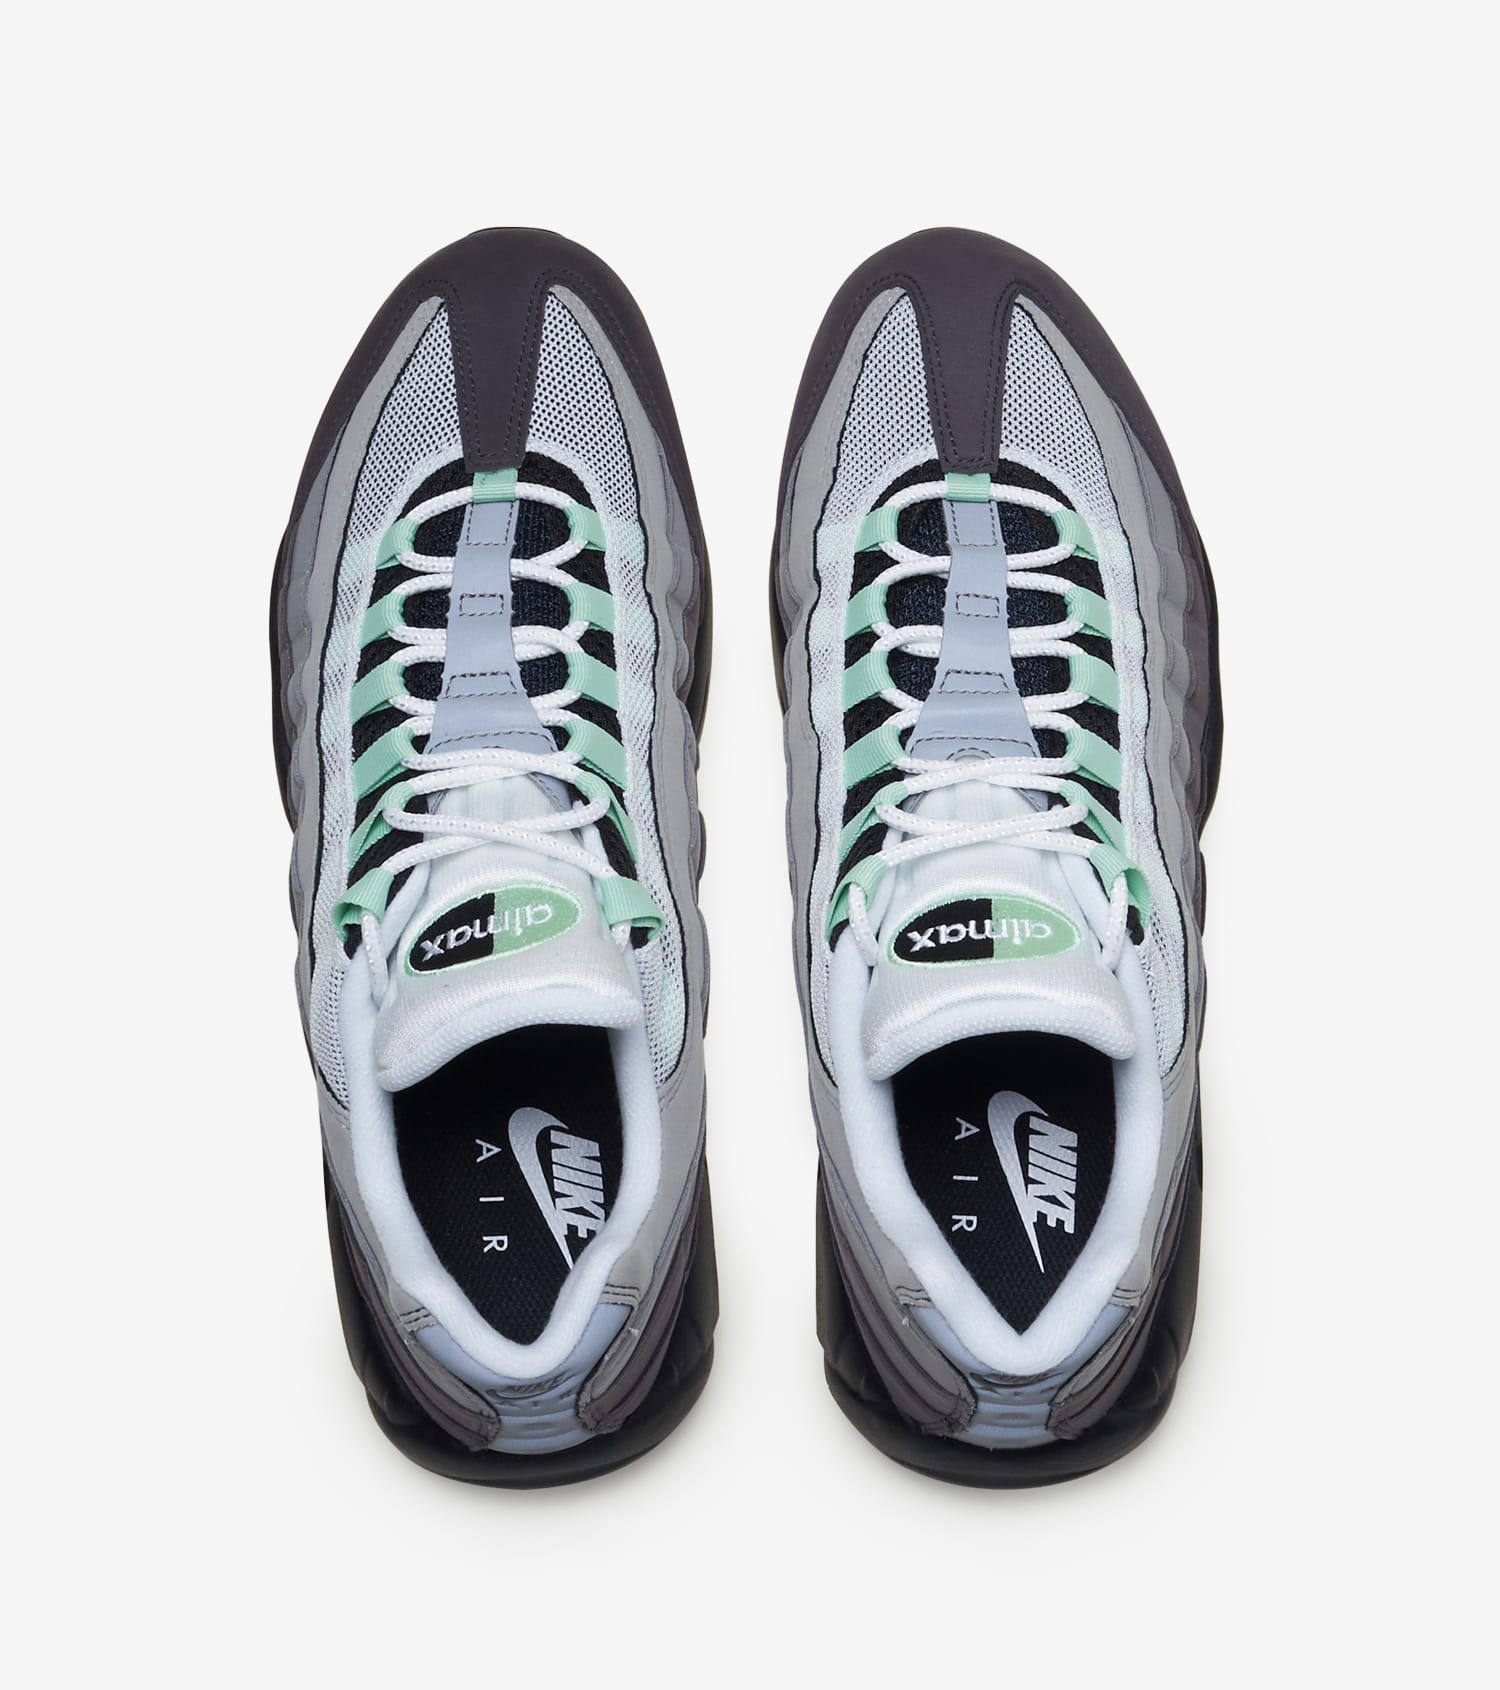 Simple Nike Air Max 95 Lifestyle Shoes for Boys, Boys Nike